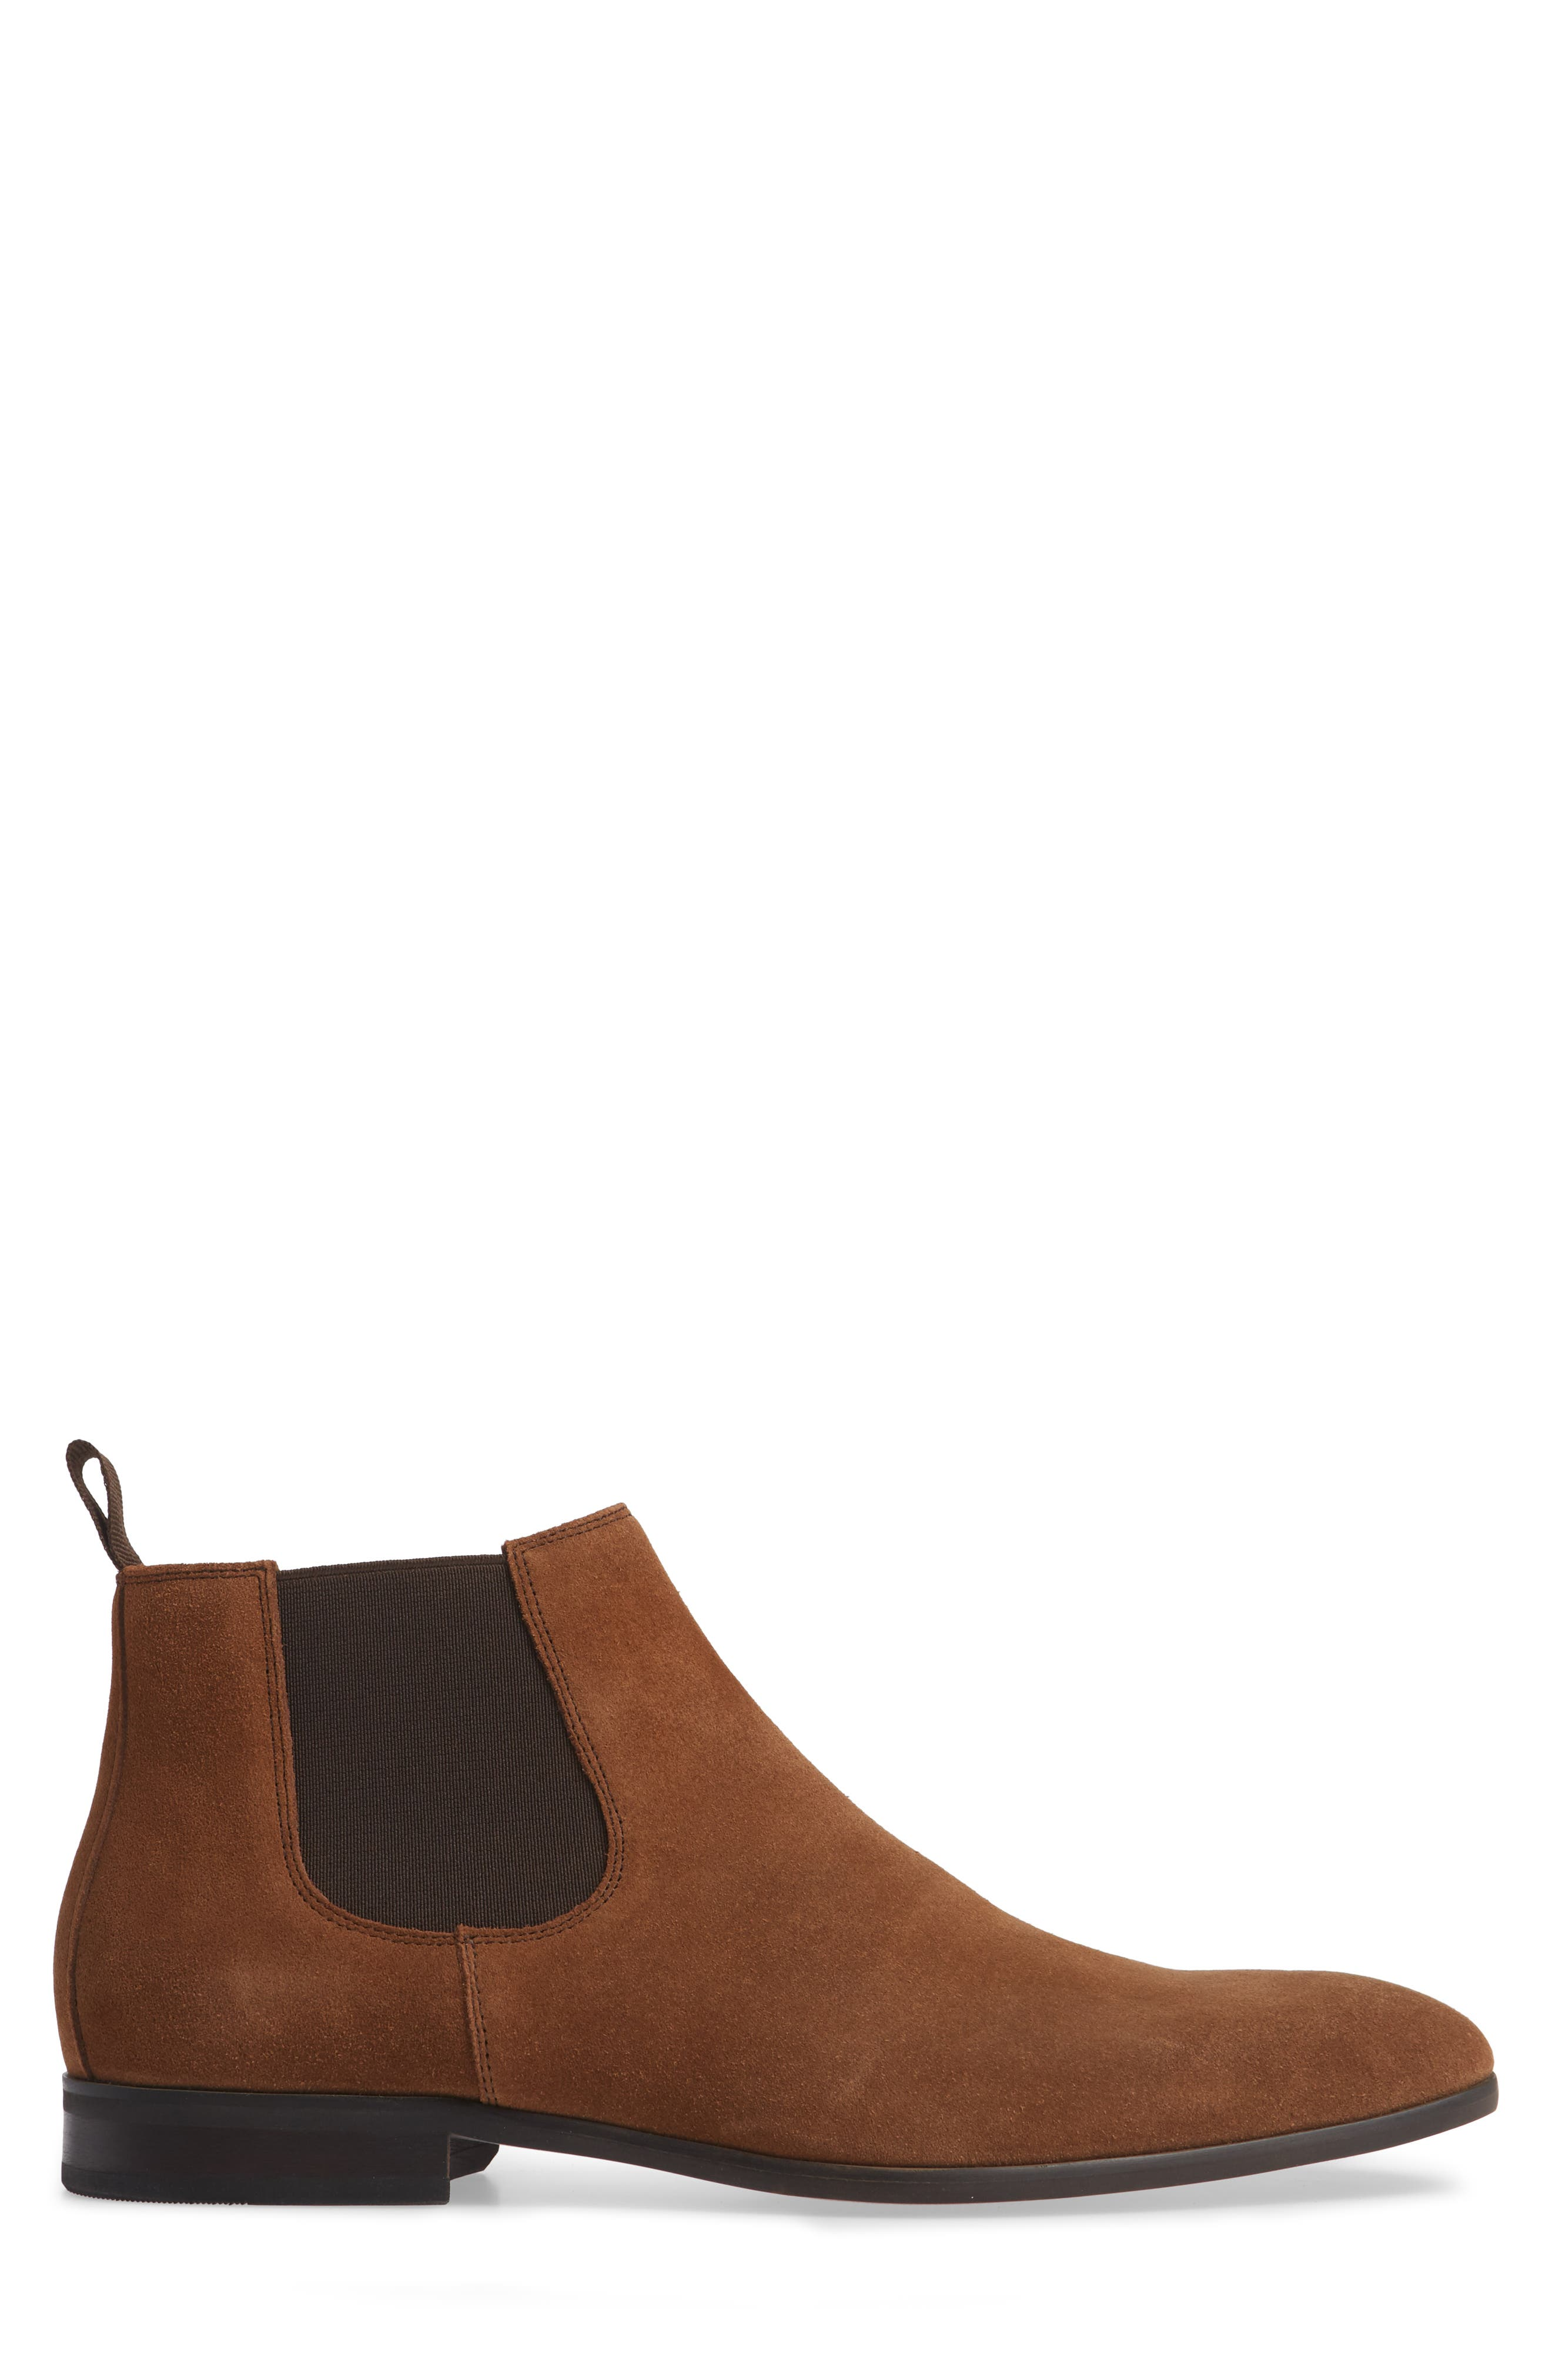 Edward Chelsea Boot,                             Alternate thumbnail 3, color,                             CHESTNUT SUEDE